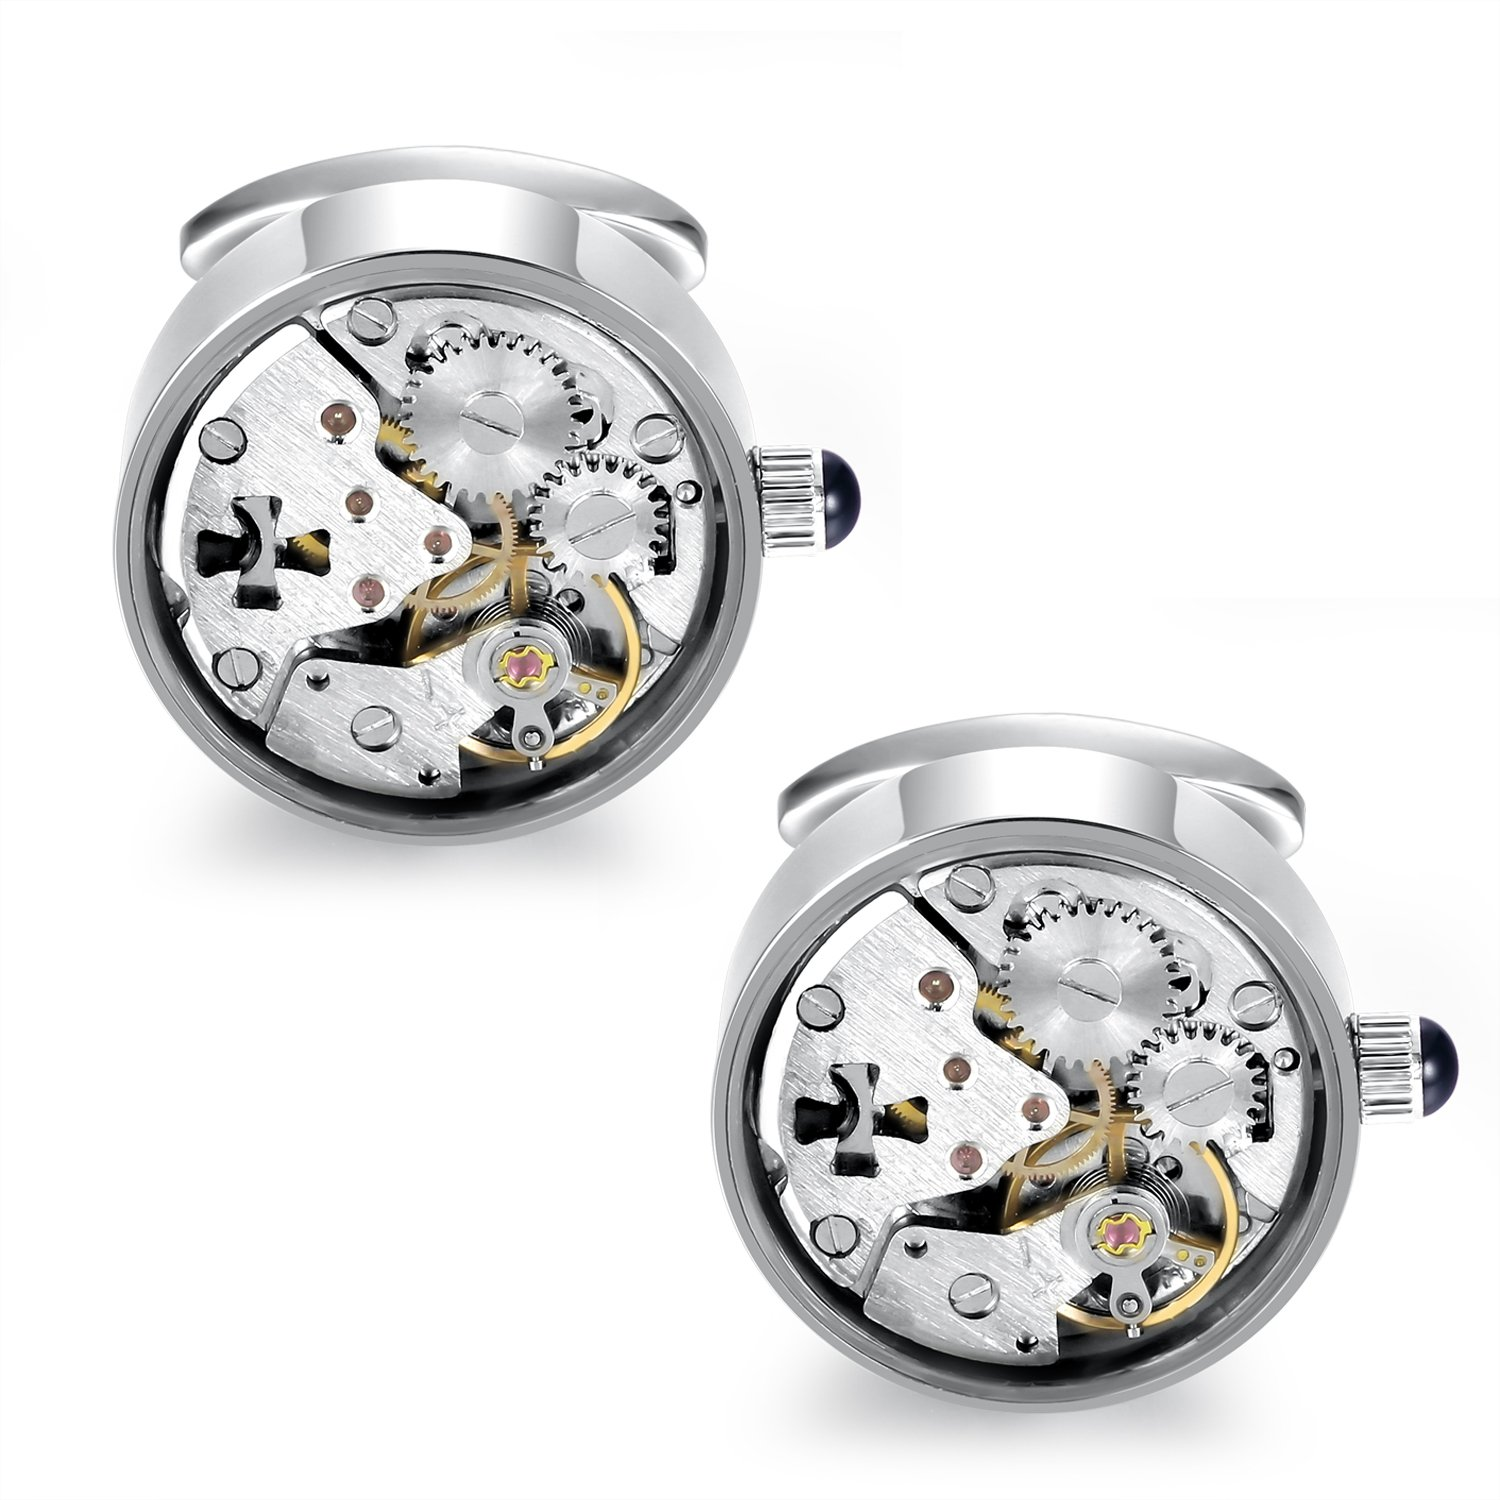 Dich Creat Unisex Stainless Steel Hollow Out Cross Steampunk Working Movement Cufflinks Covered With Glass